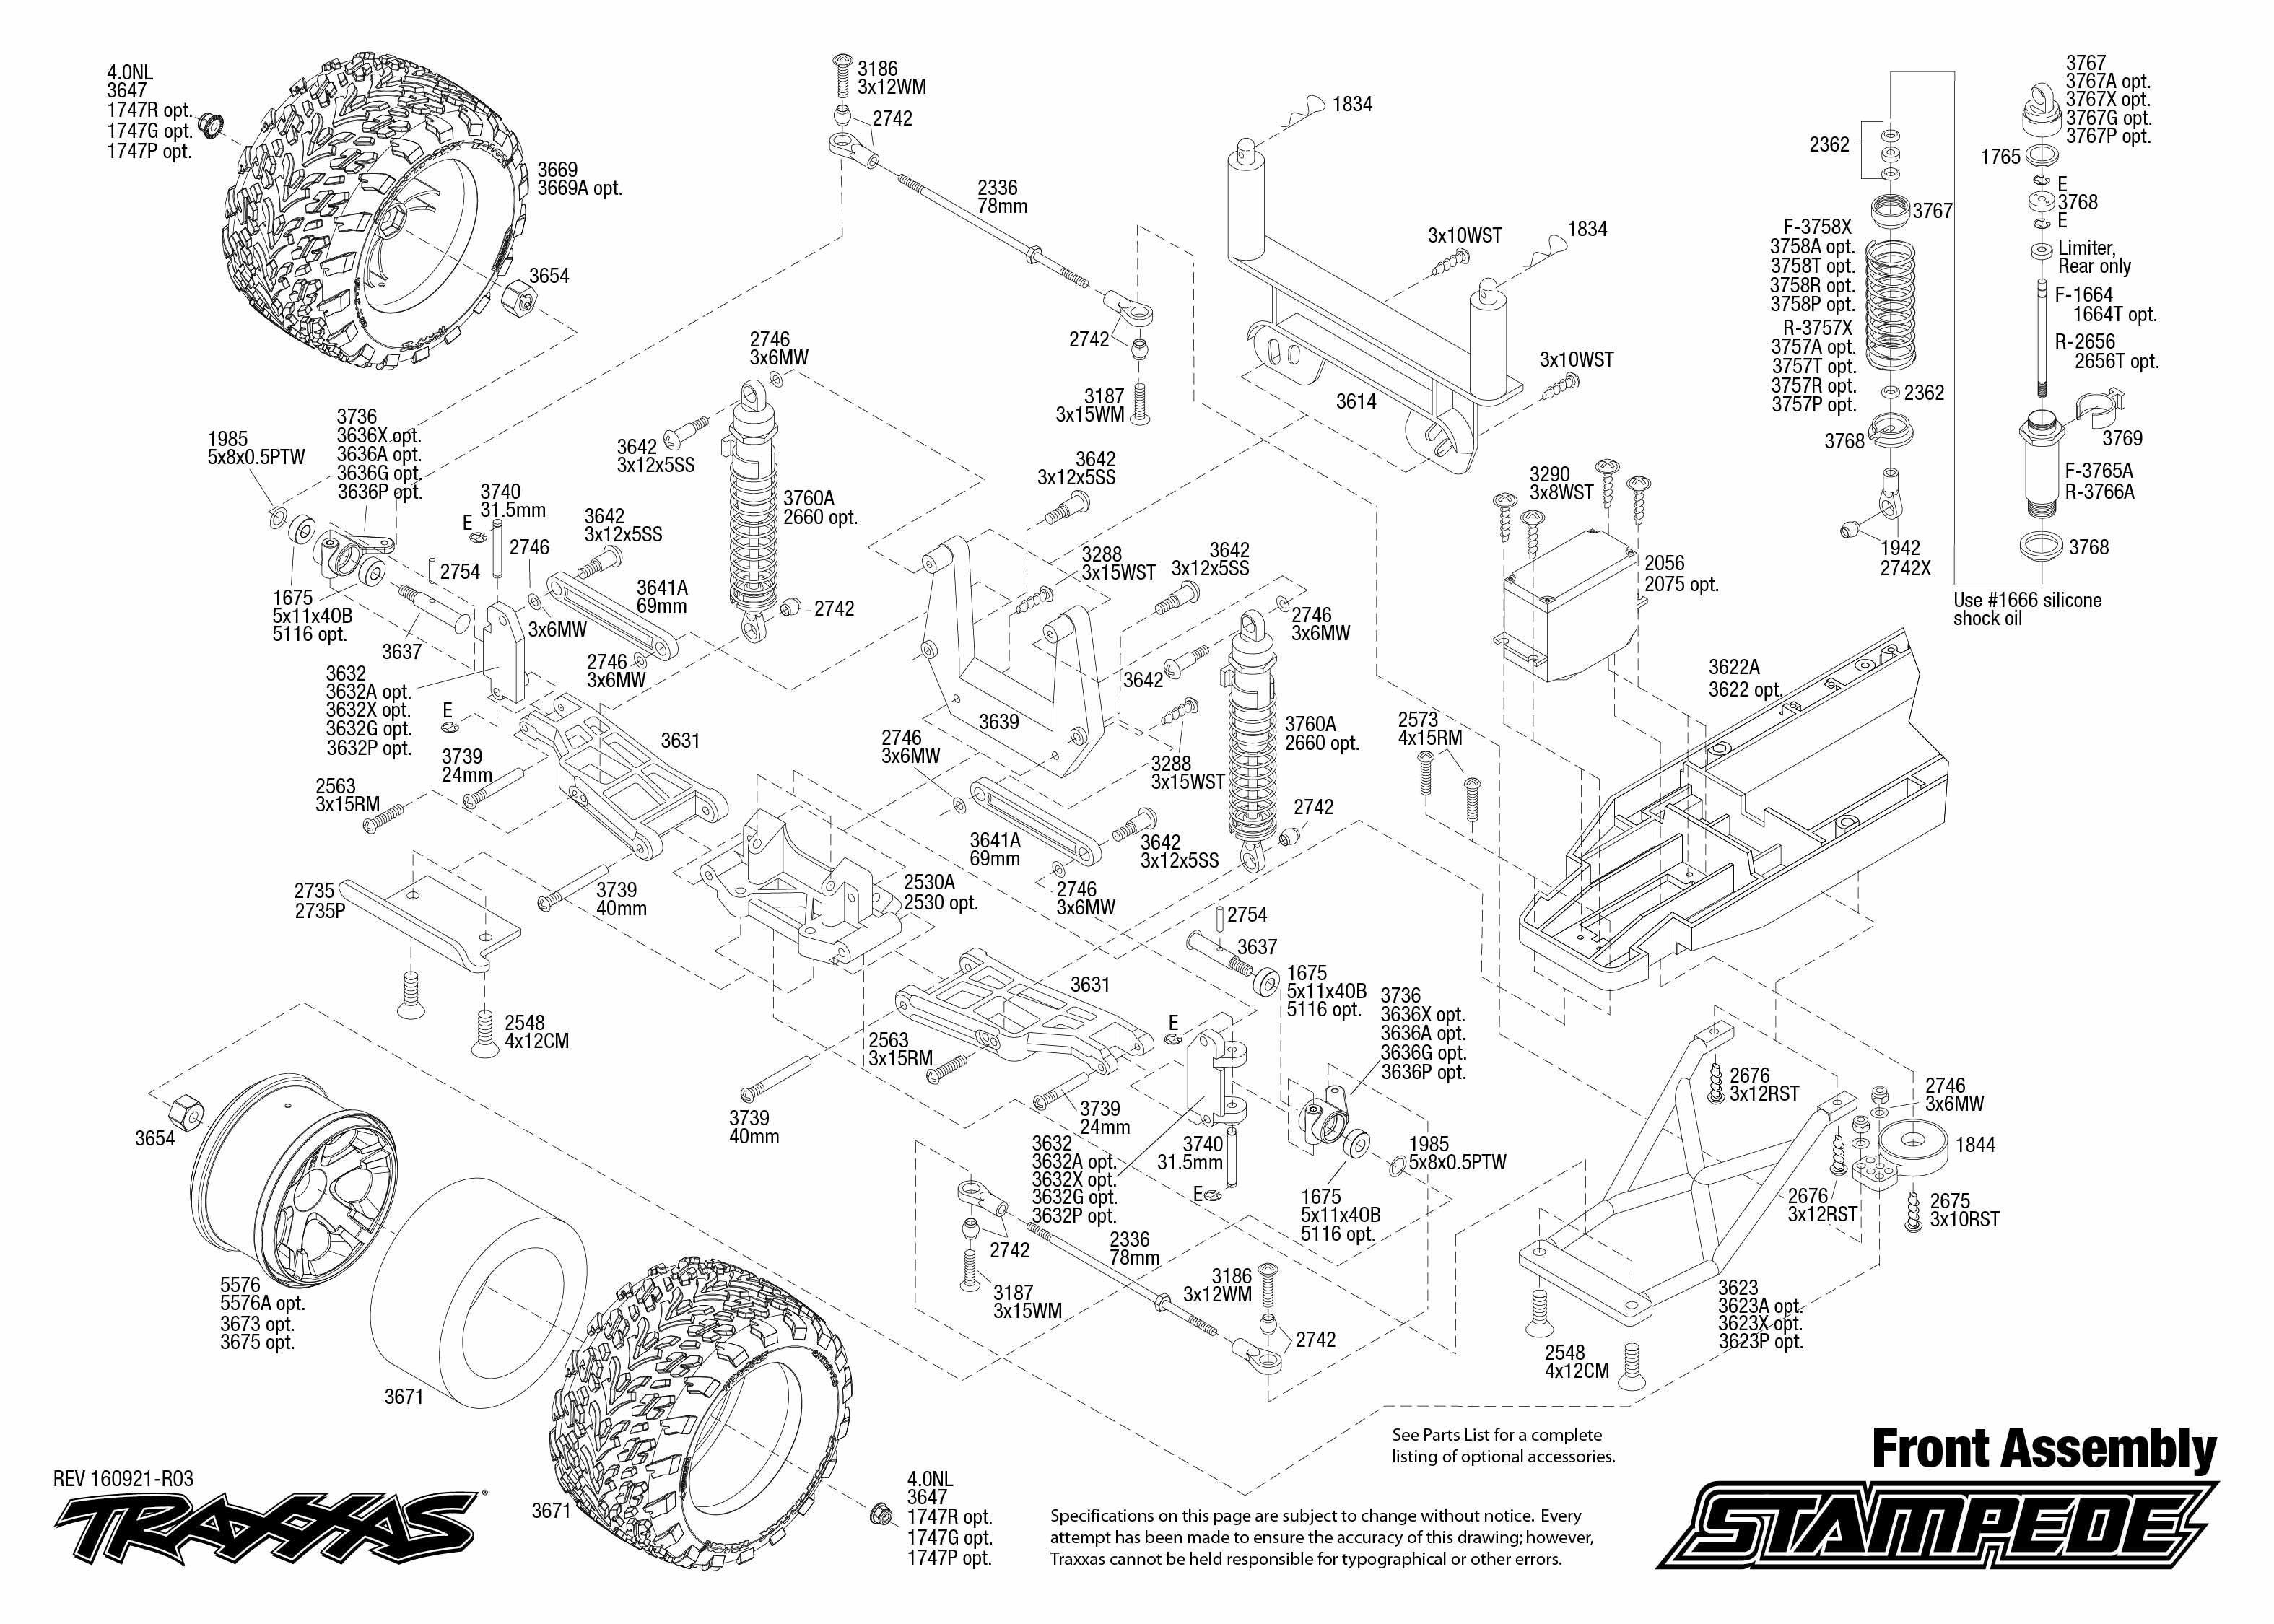 Traxxas Stampede Diagram Free Wiring For You 4x4 Vxl 1 10 Scale 4wd Brushless Monster Truck Rustler Motor Simple Site Rh 7 17 2 Ohnevergnuegen De Parts